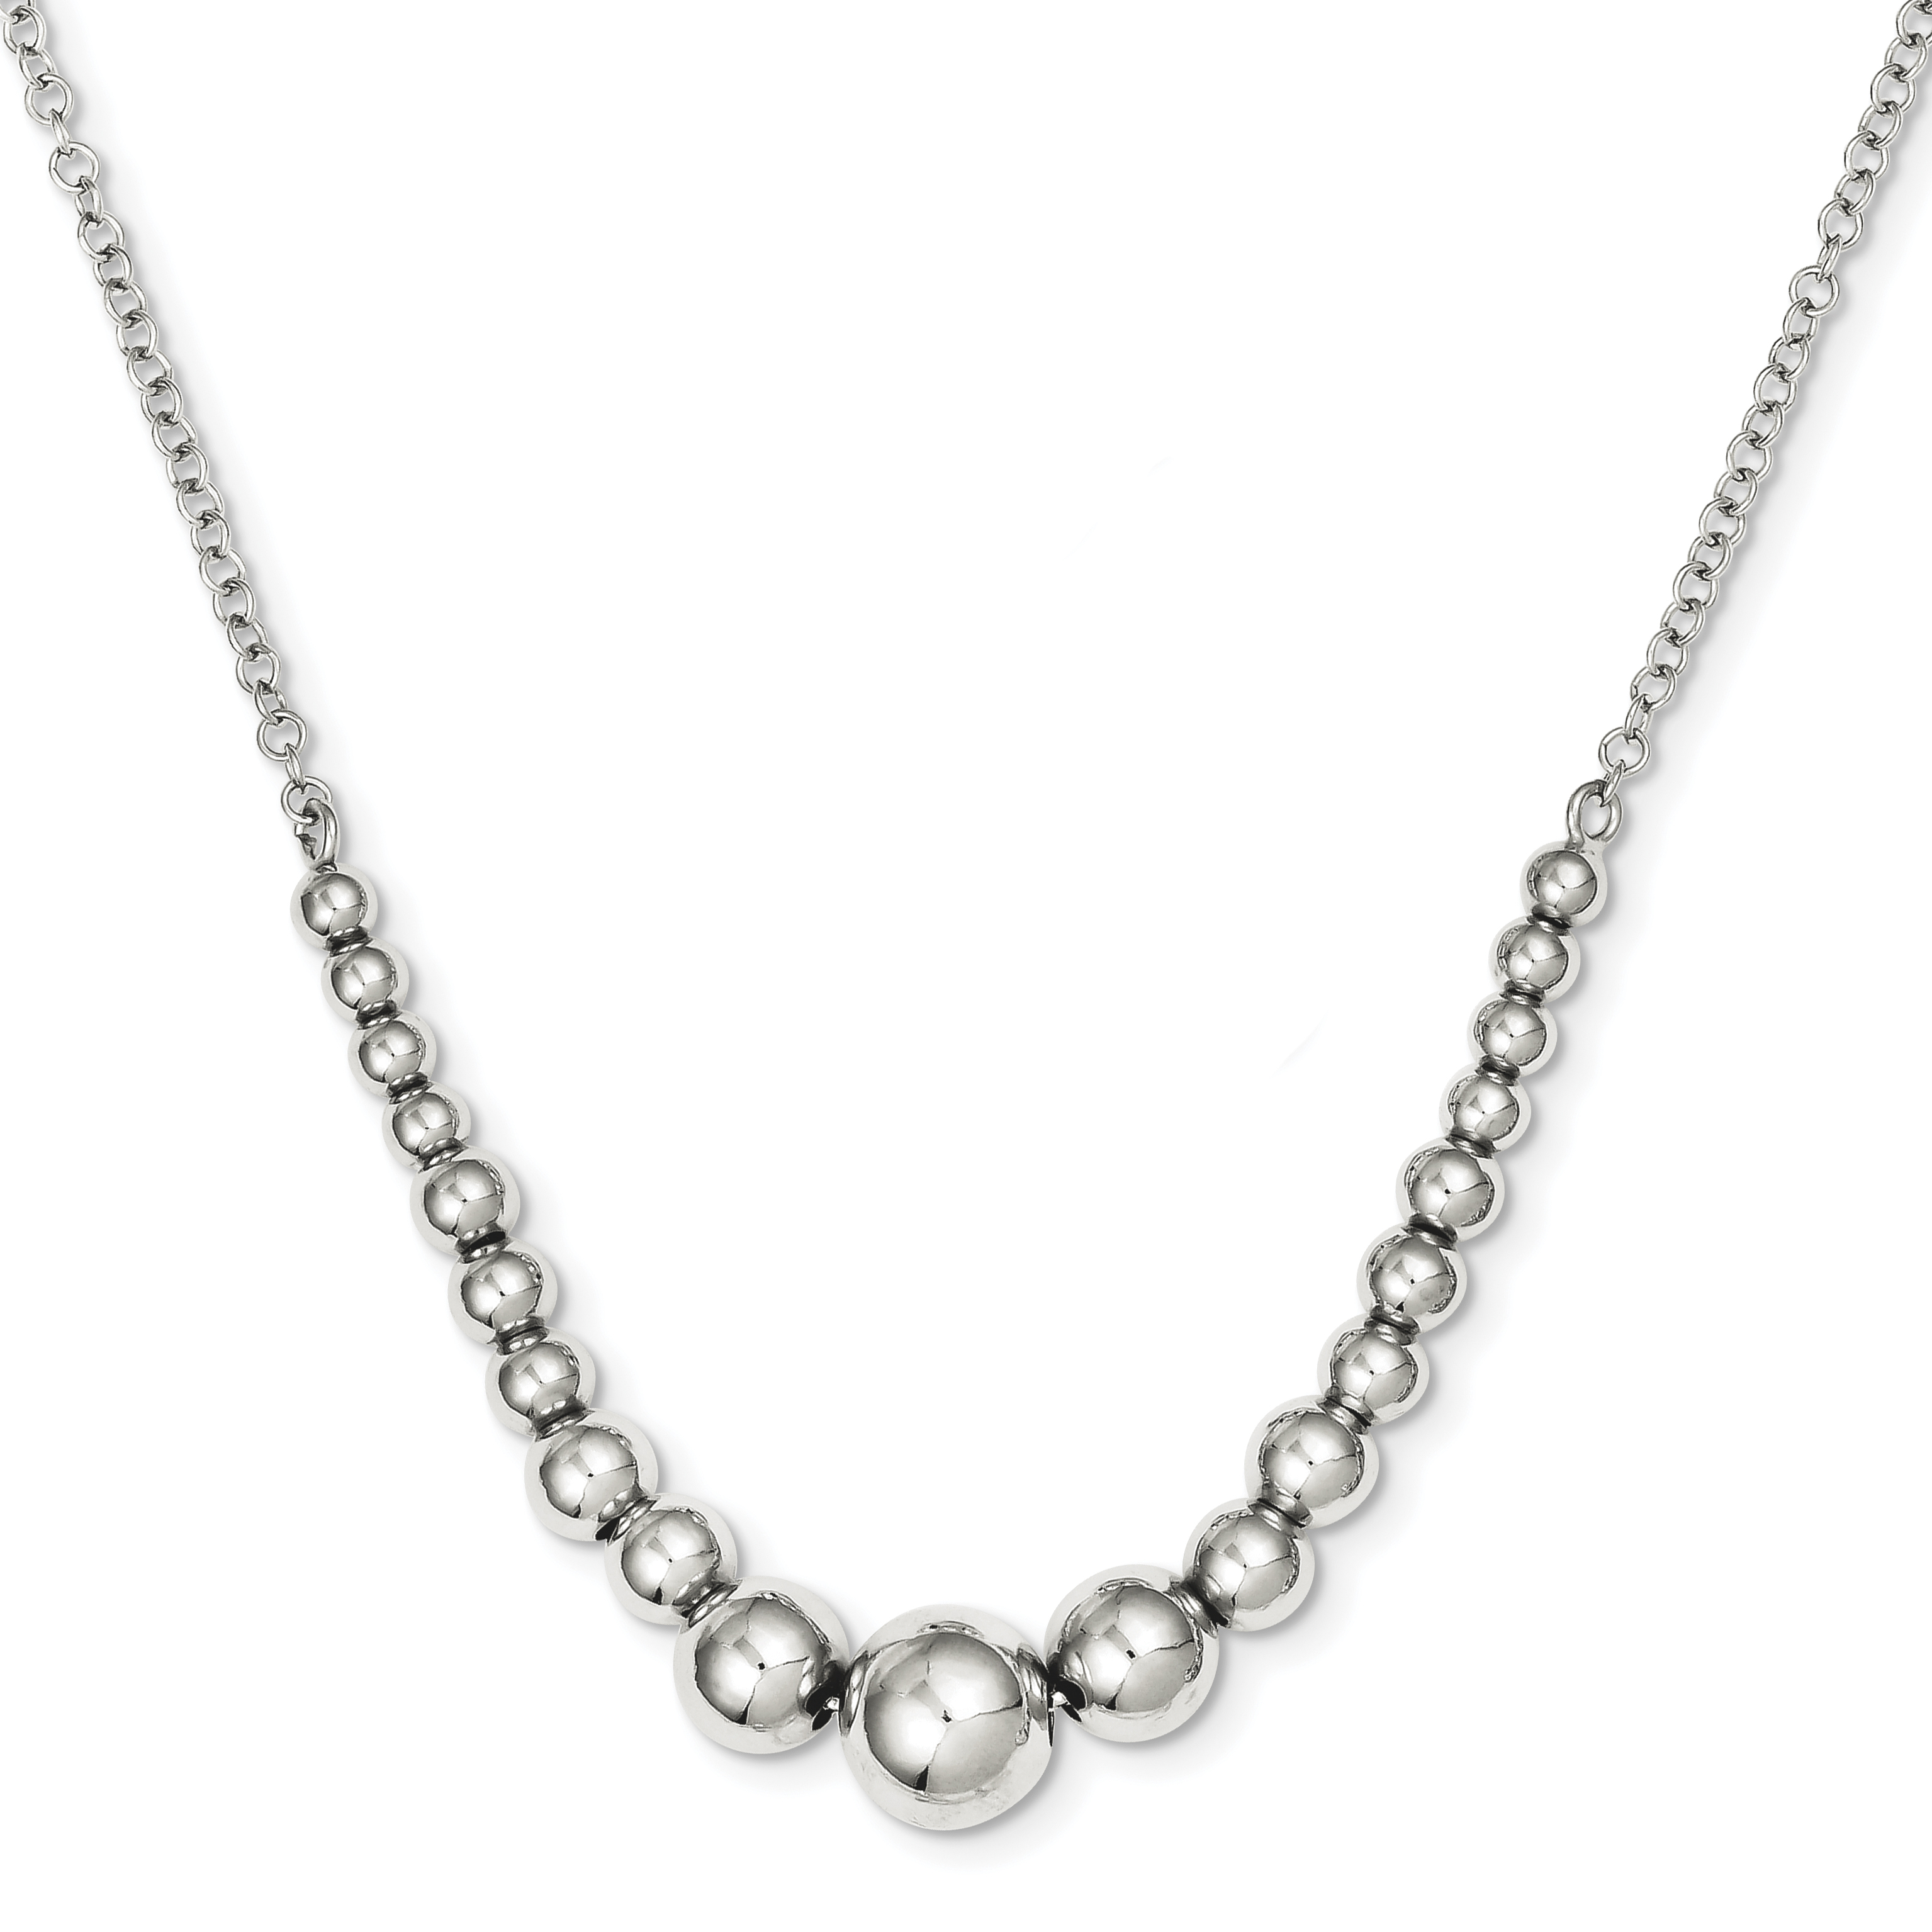 Sterling Silver Polished Graduated Bead Necklace | Weight: 5.38 grams, Length: 18mm, Width: mm